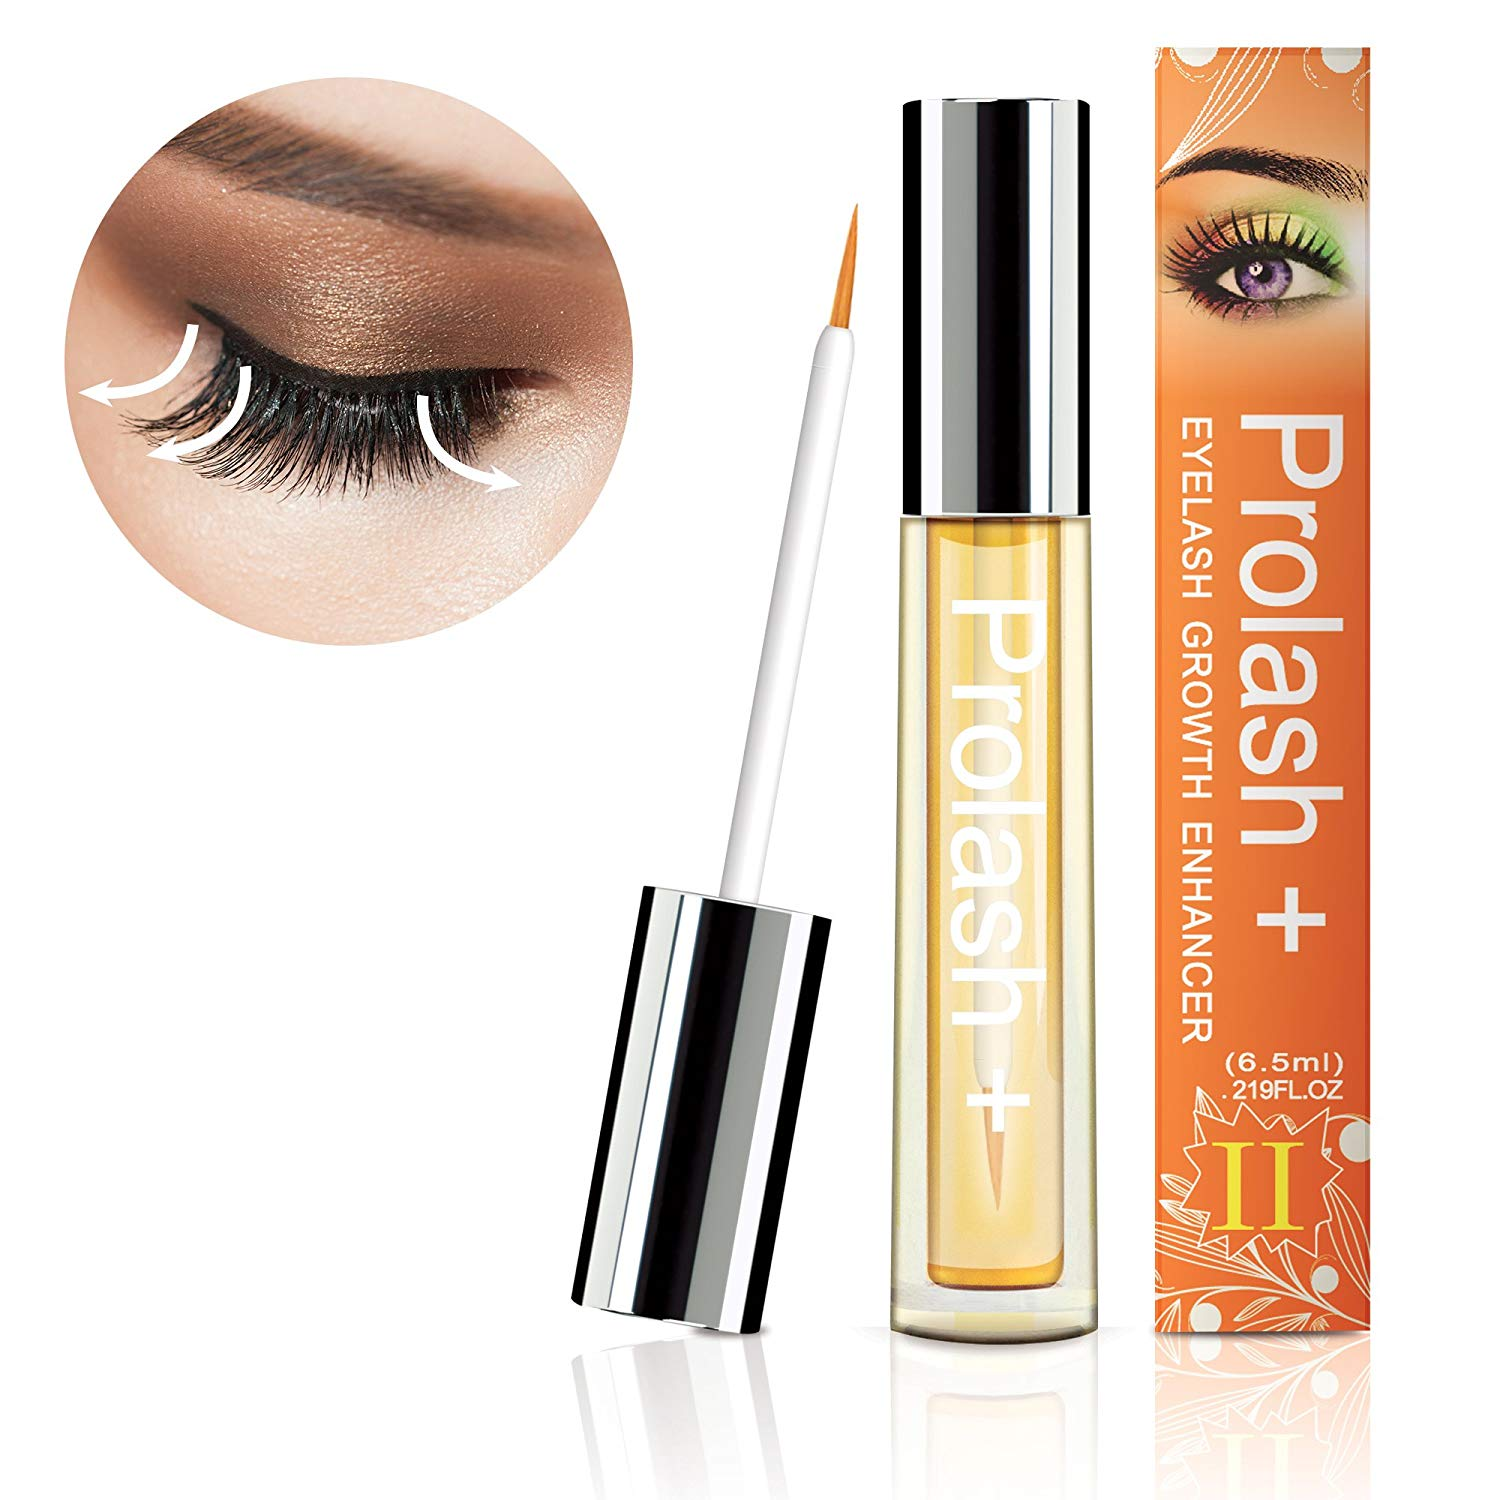 c9fd5ff7349 Get Quotations · Large 6.5 ml Eyelash Growth Serum, Eyebrow Growth Serum, Great  Eyelash Growth Serum For